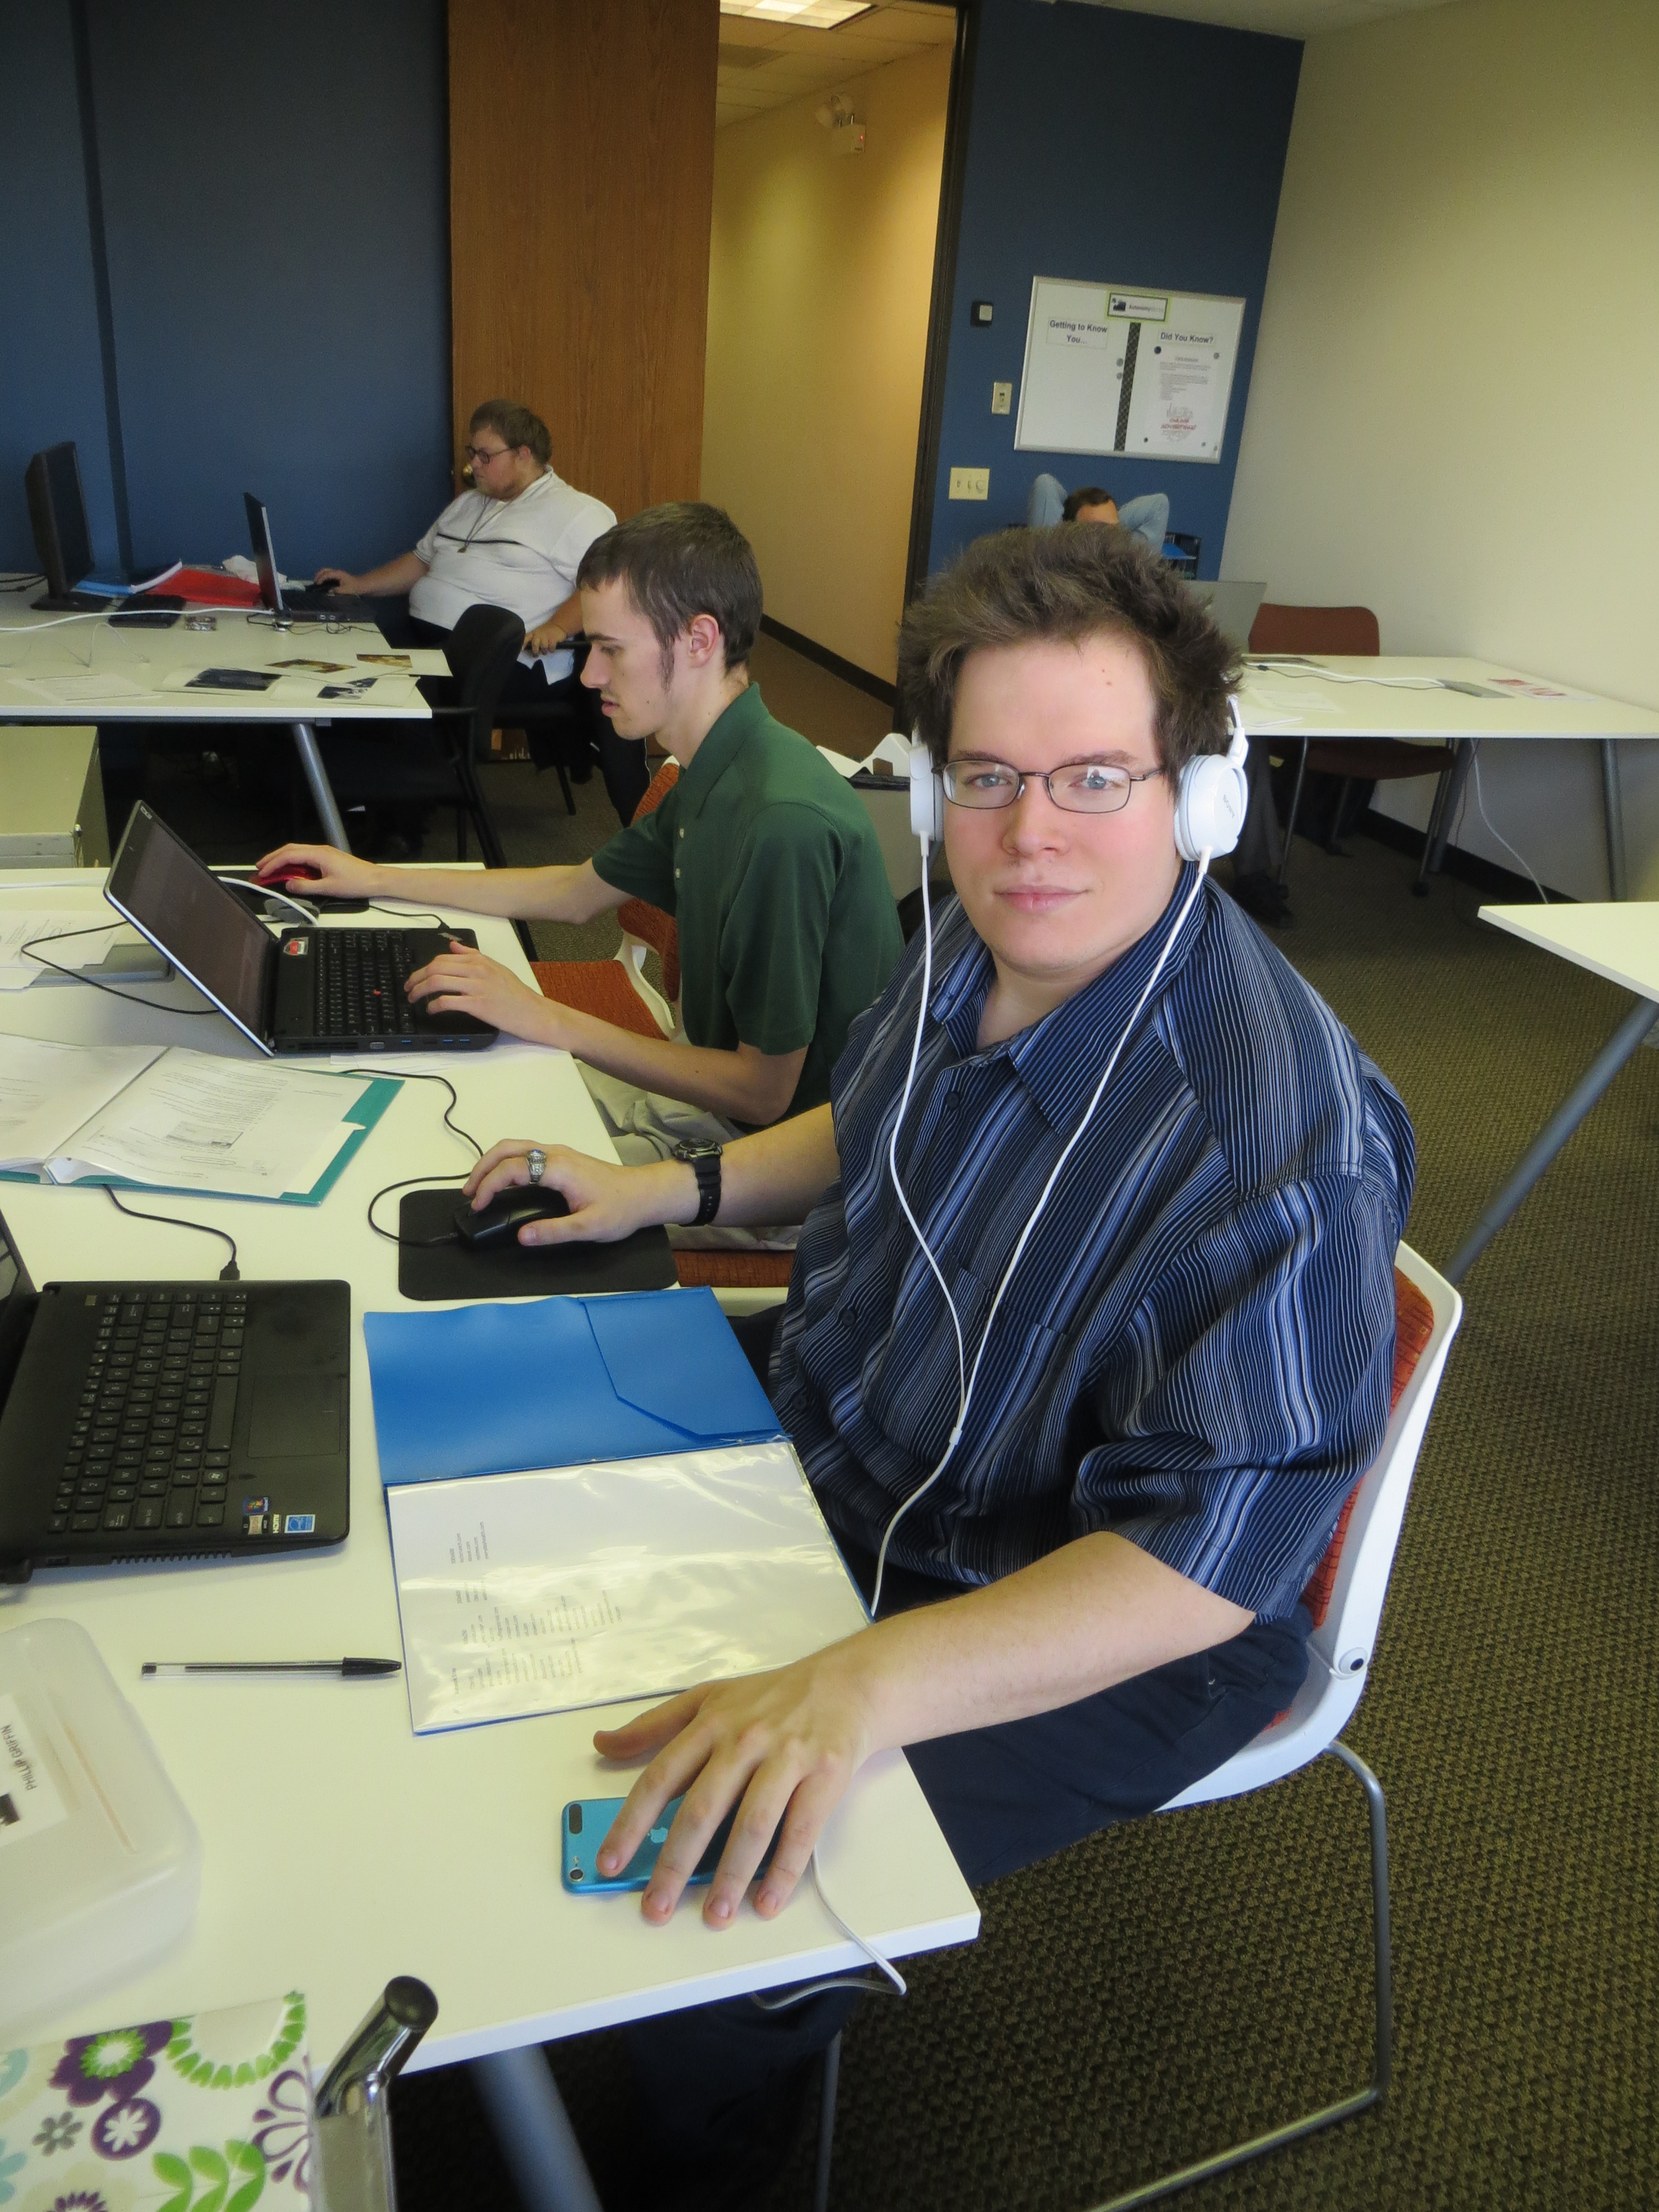 Chicago based AutonomyWorks employs young adults with autism